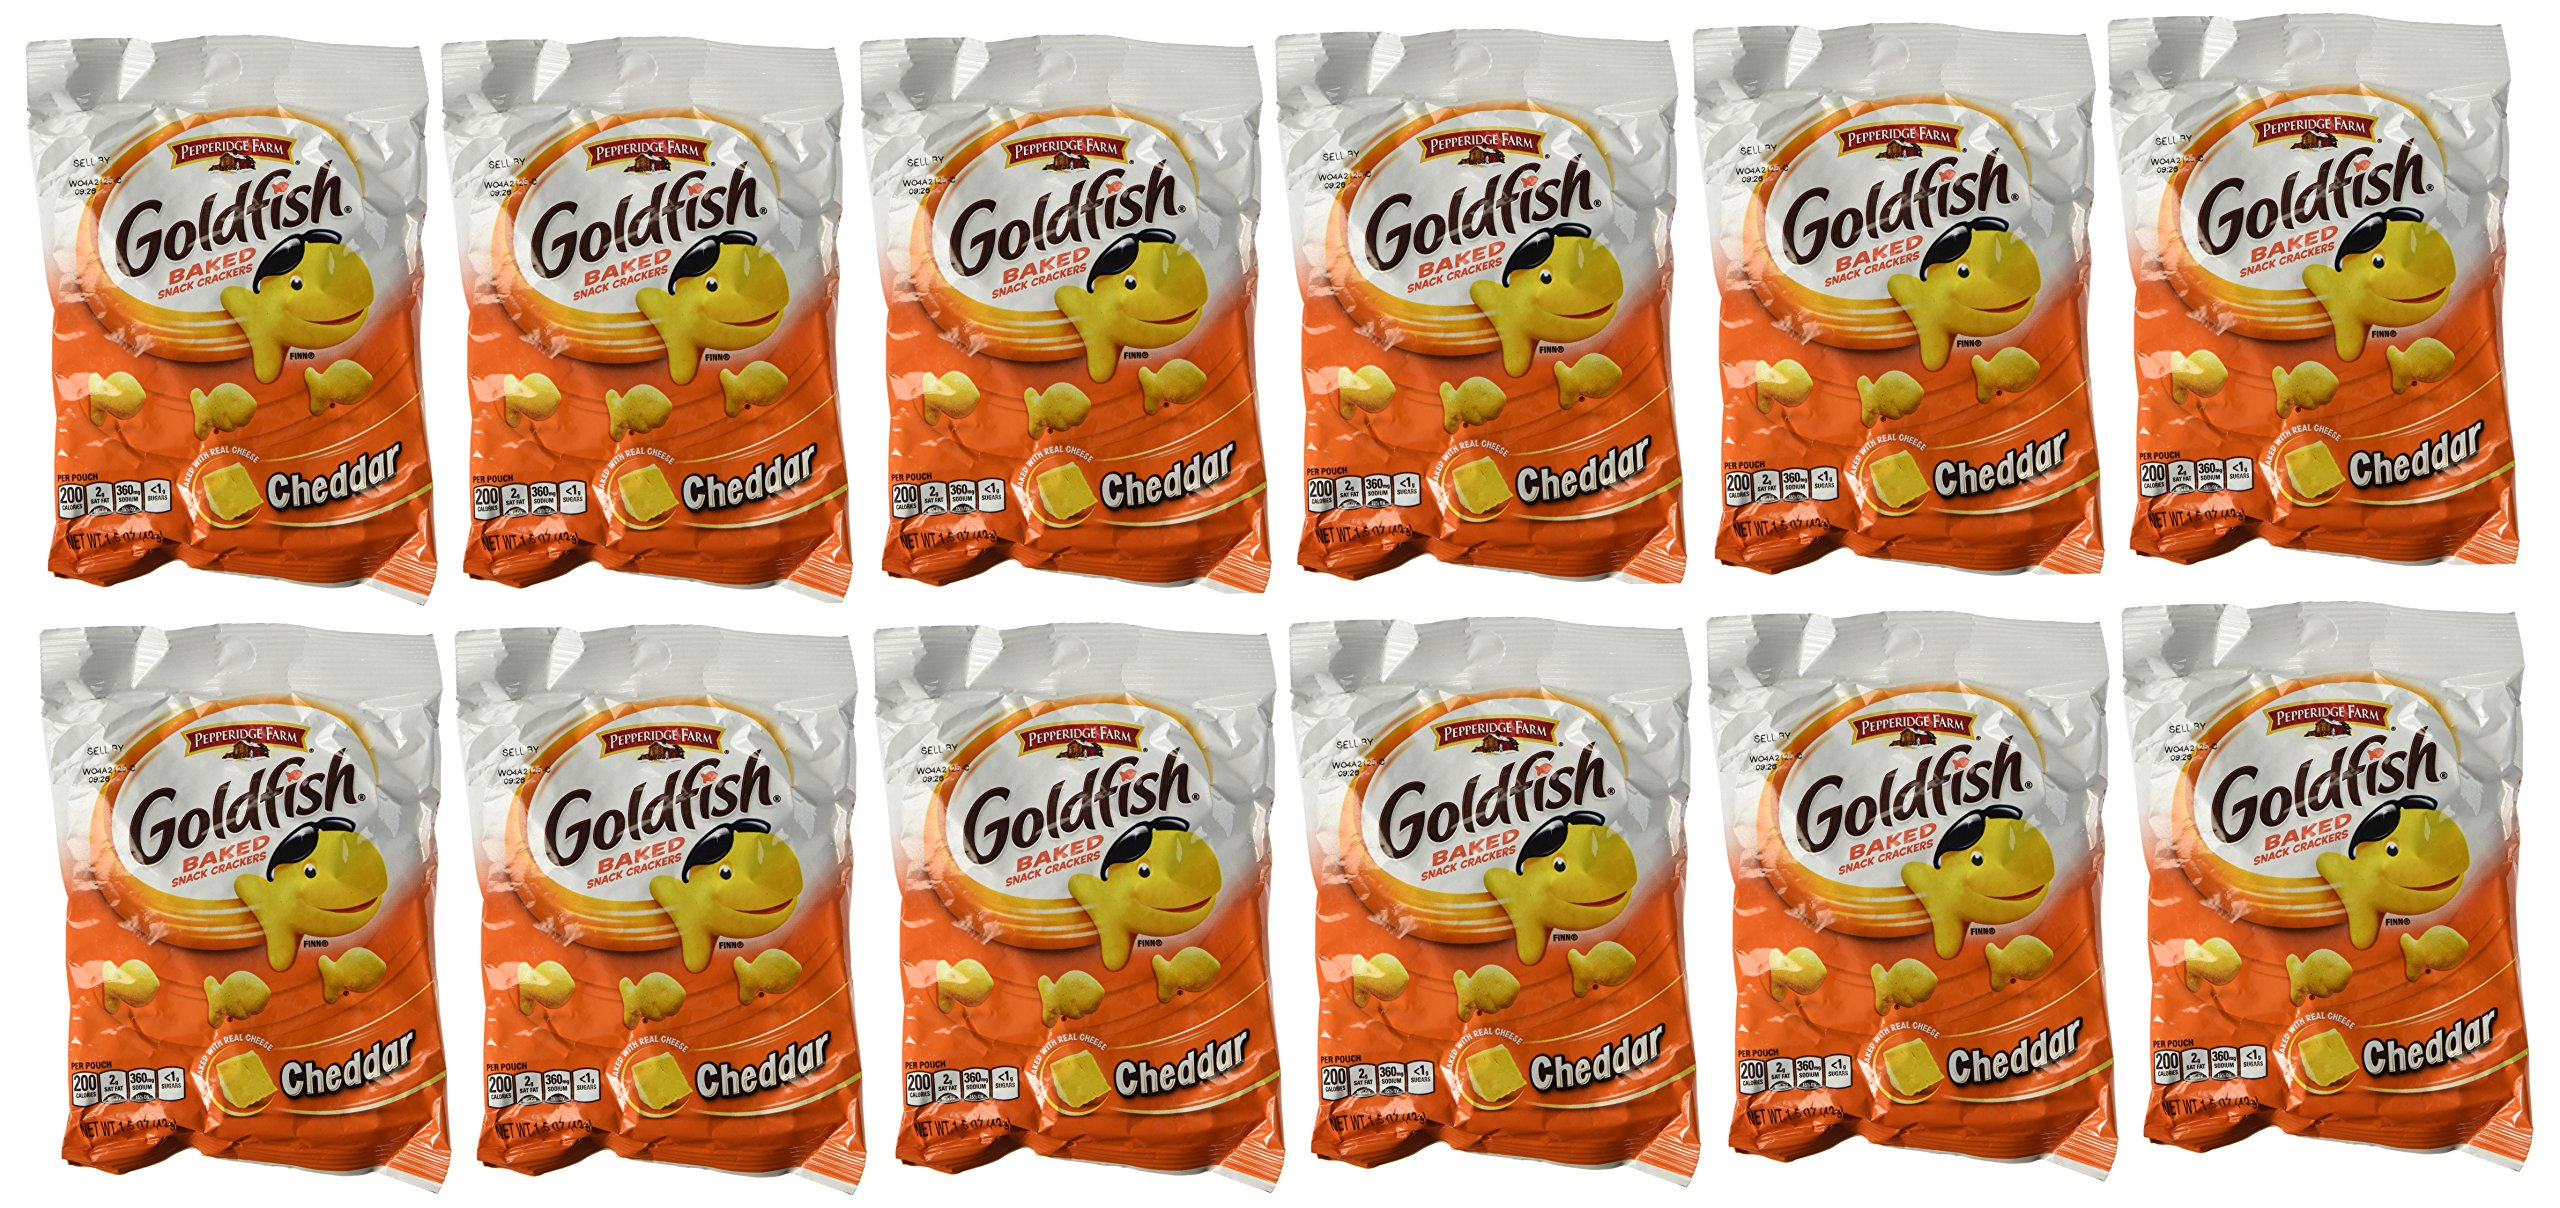 Pepperidge Farm Goldfish, Cheddar, 1.5 Ounce Bags (Pack of 12) by Iceman's Thunder